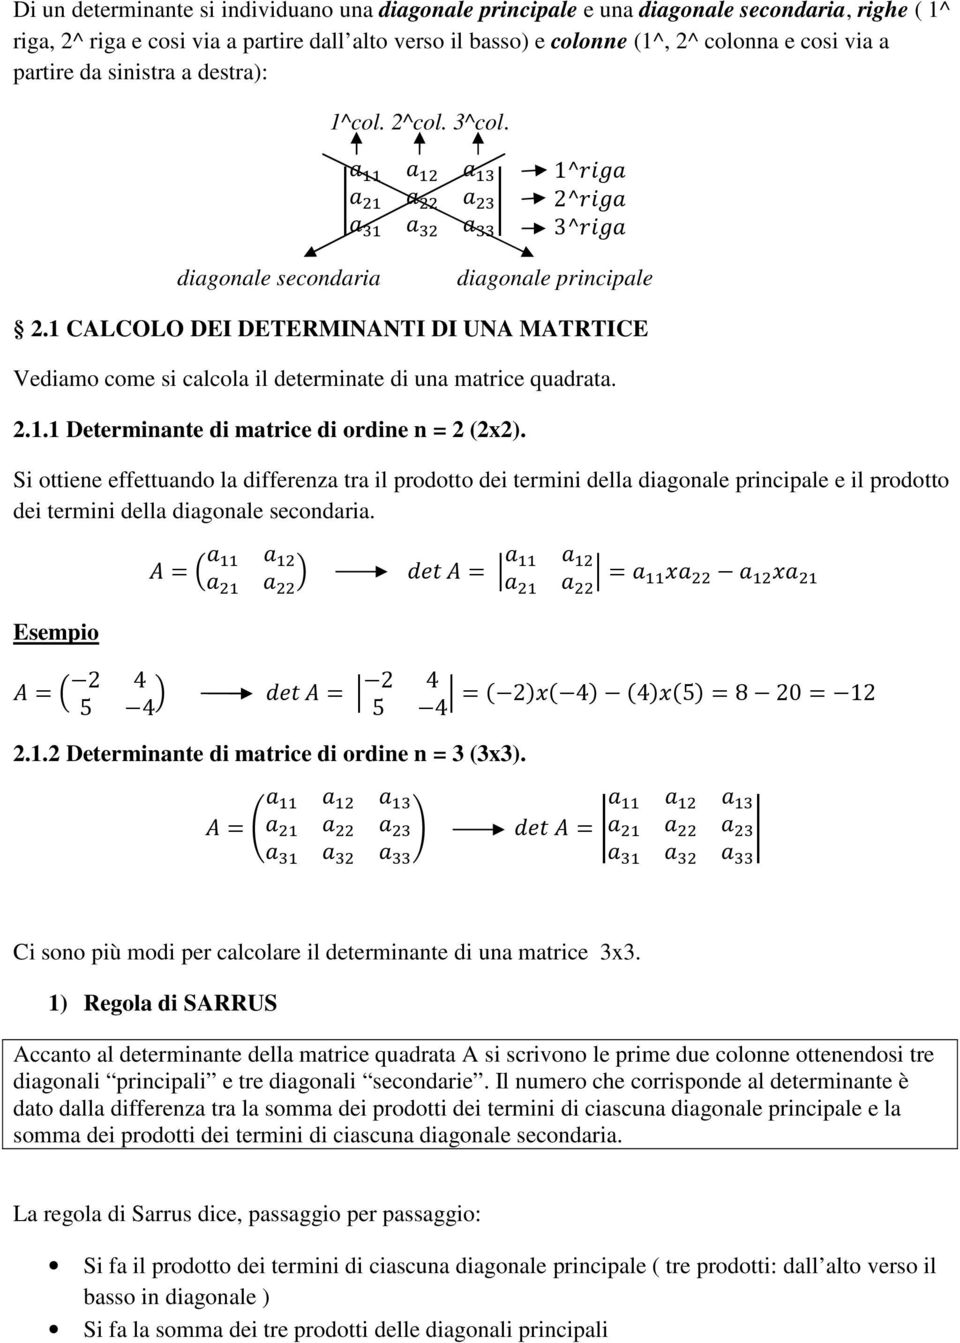 1 CALCOLO DEI DETERMINANTI DI UNA MATRTICE Vediamo come si calcola il determinate di una matrice quadrata. 2.1.1 Determinante di matrice di ordine n = 2 (2x2).